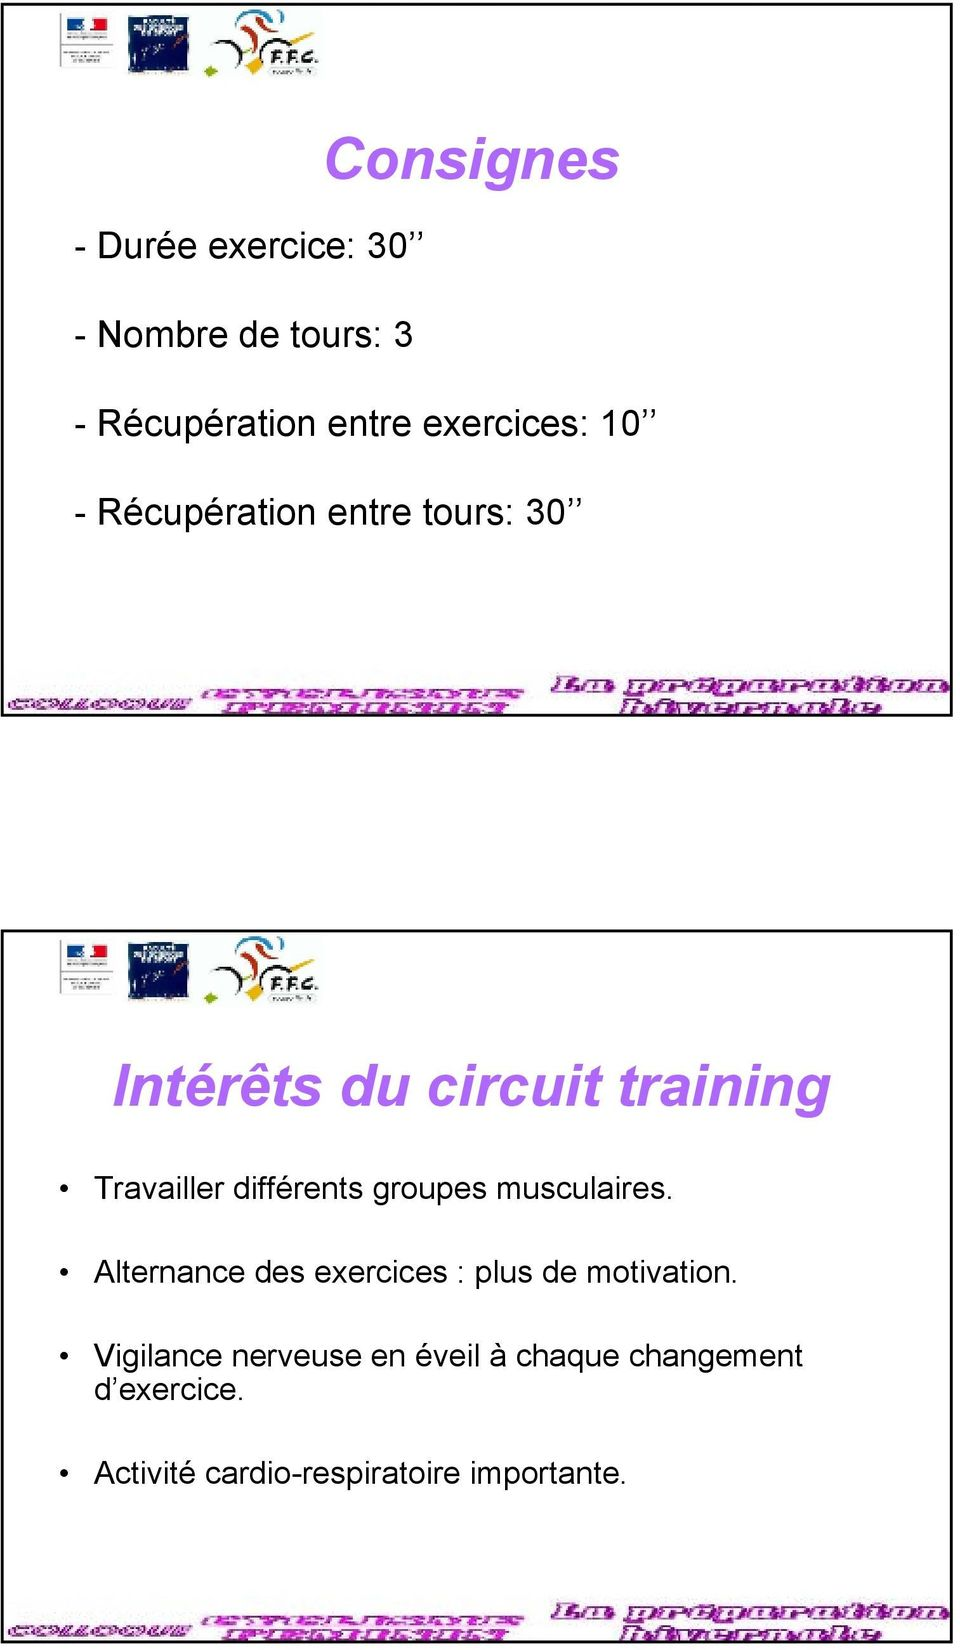 groupes musculaires. Alternance des exercices : plus de motivation.